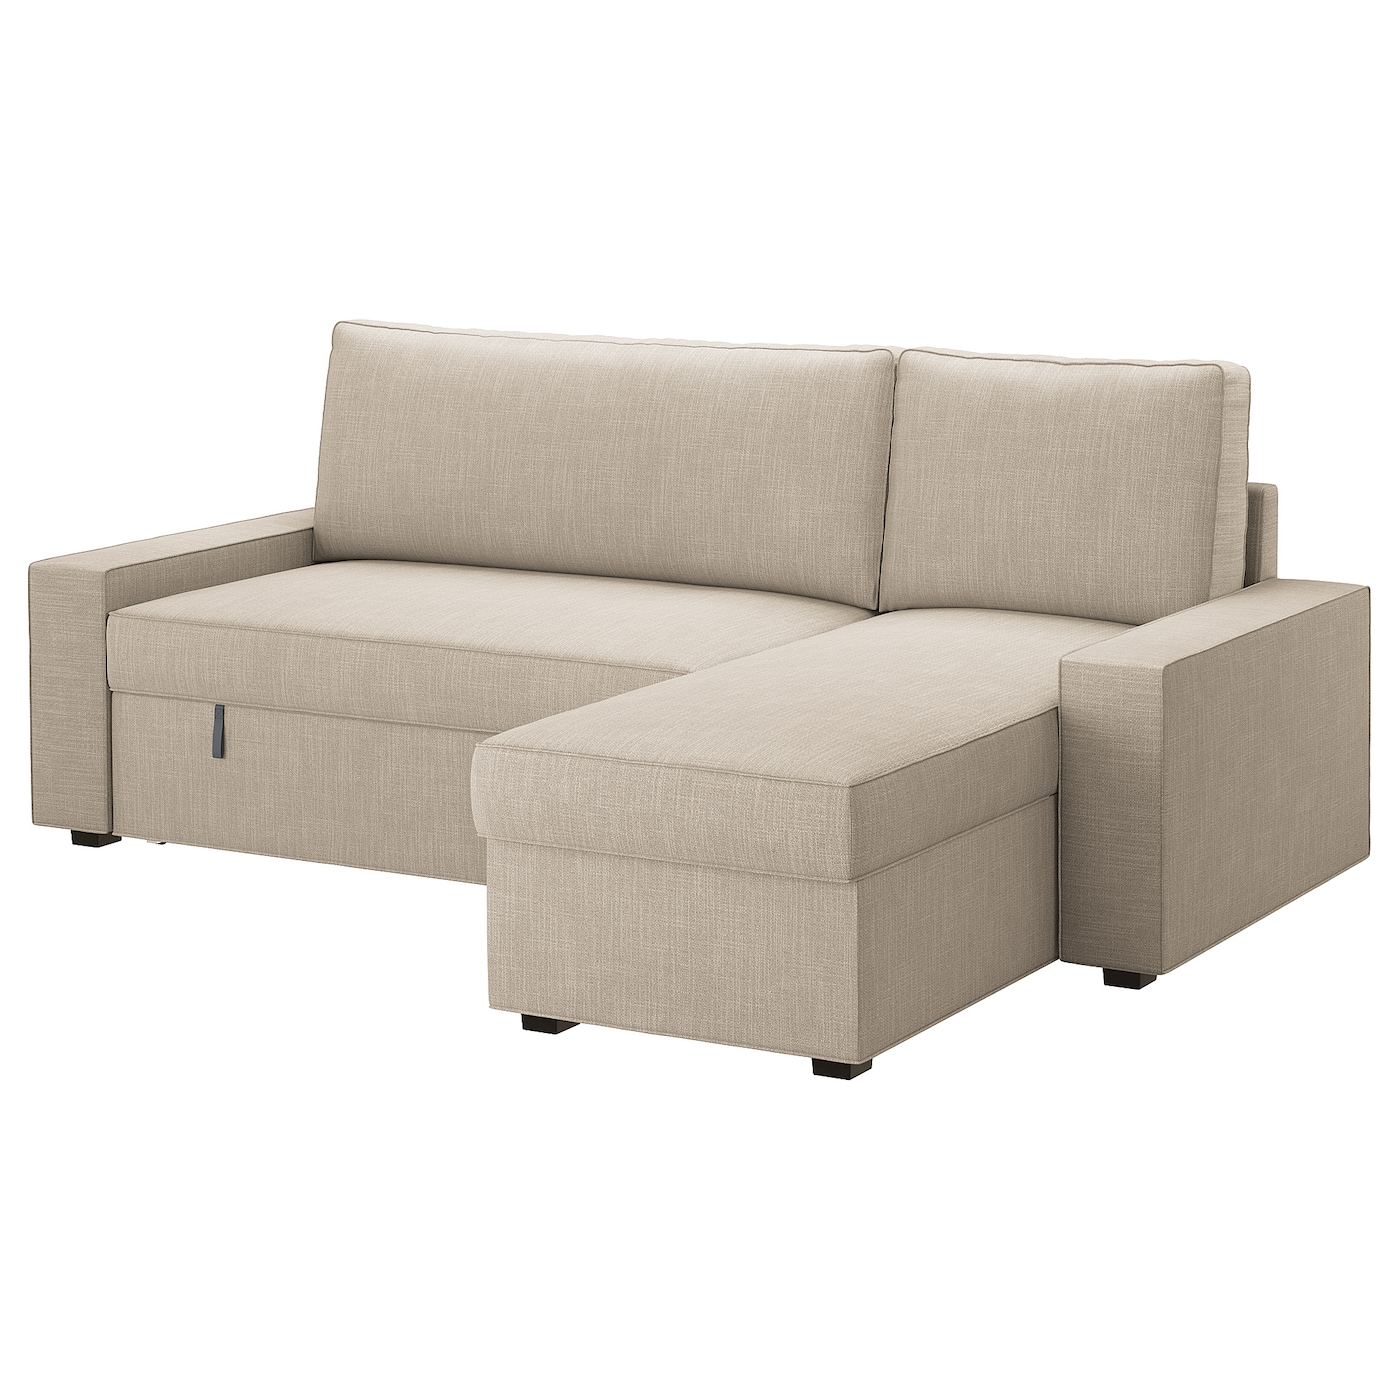 Vilasund sofa bed with chaise longue hillared beige ikea - Chaise longue jardin ikea ...